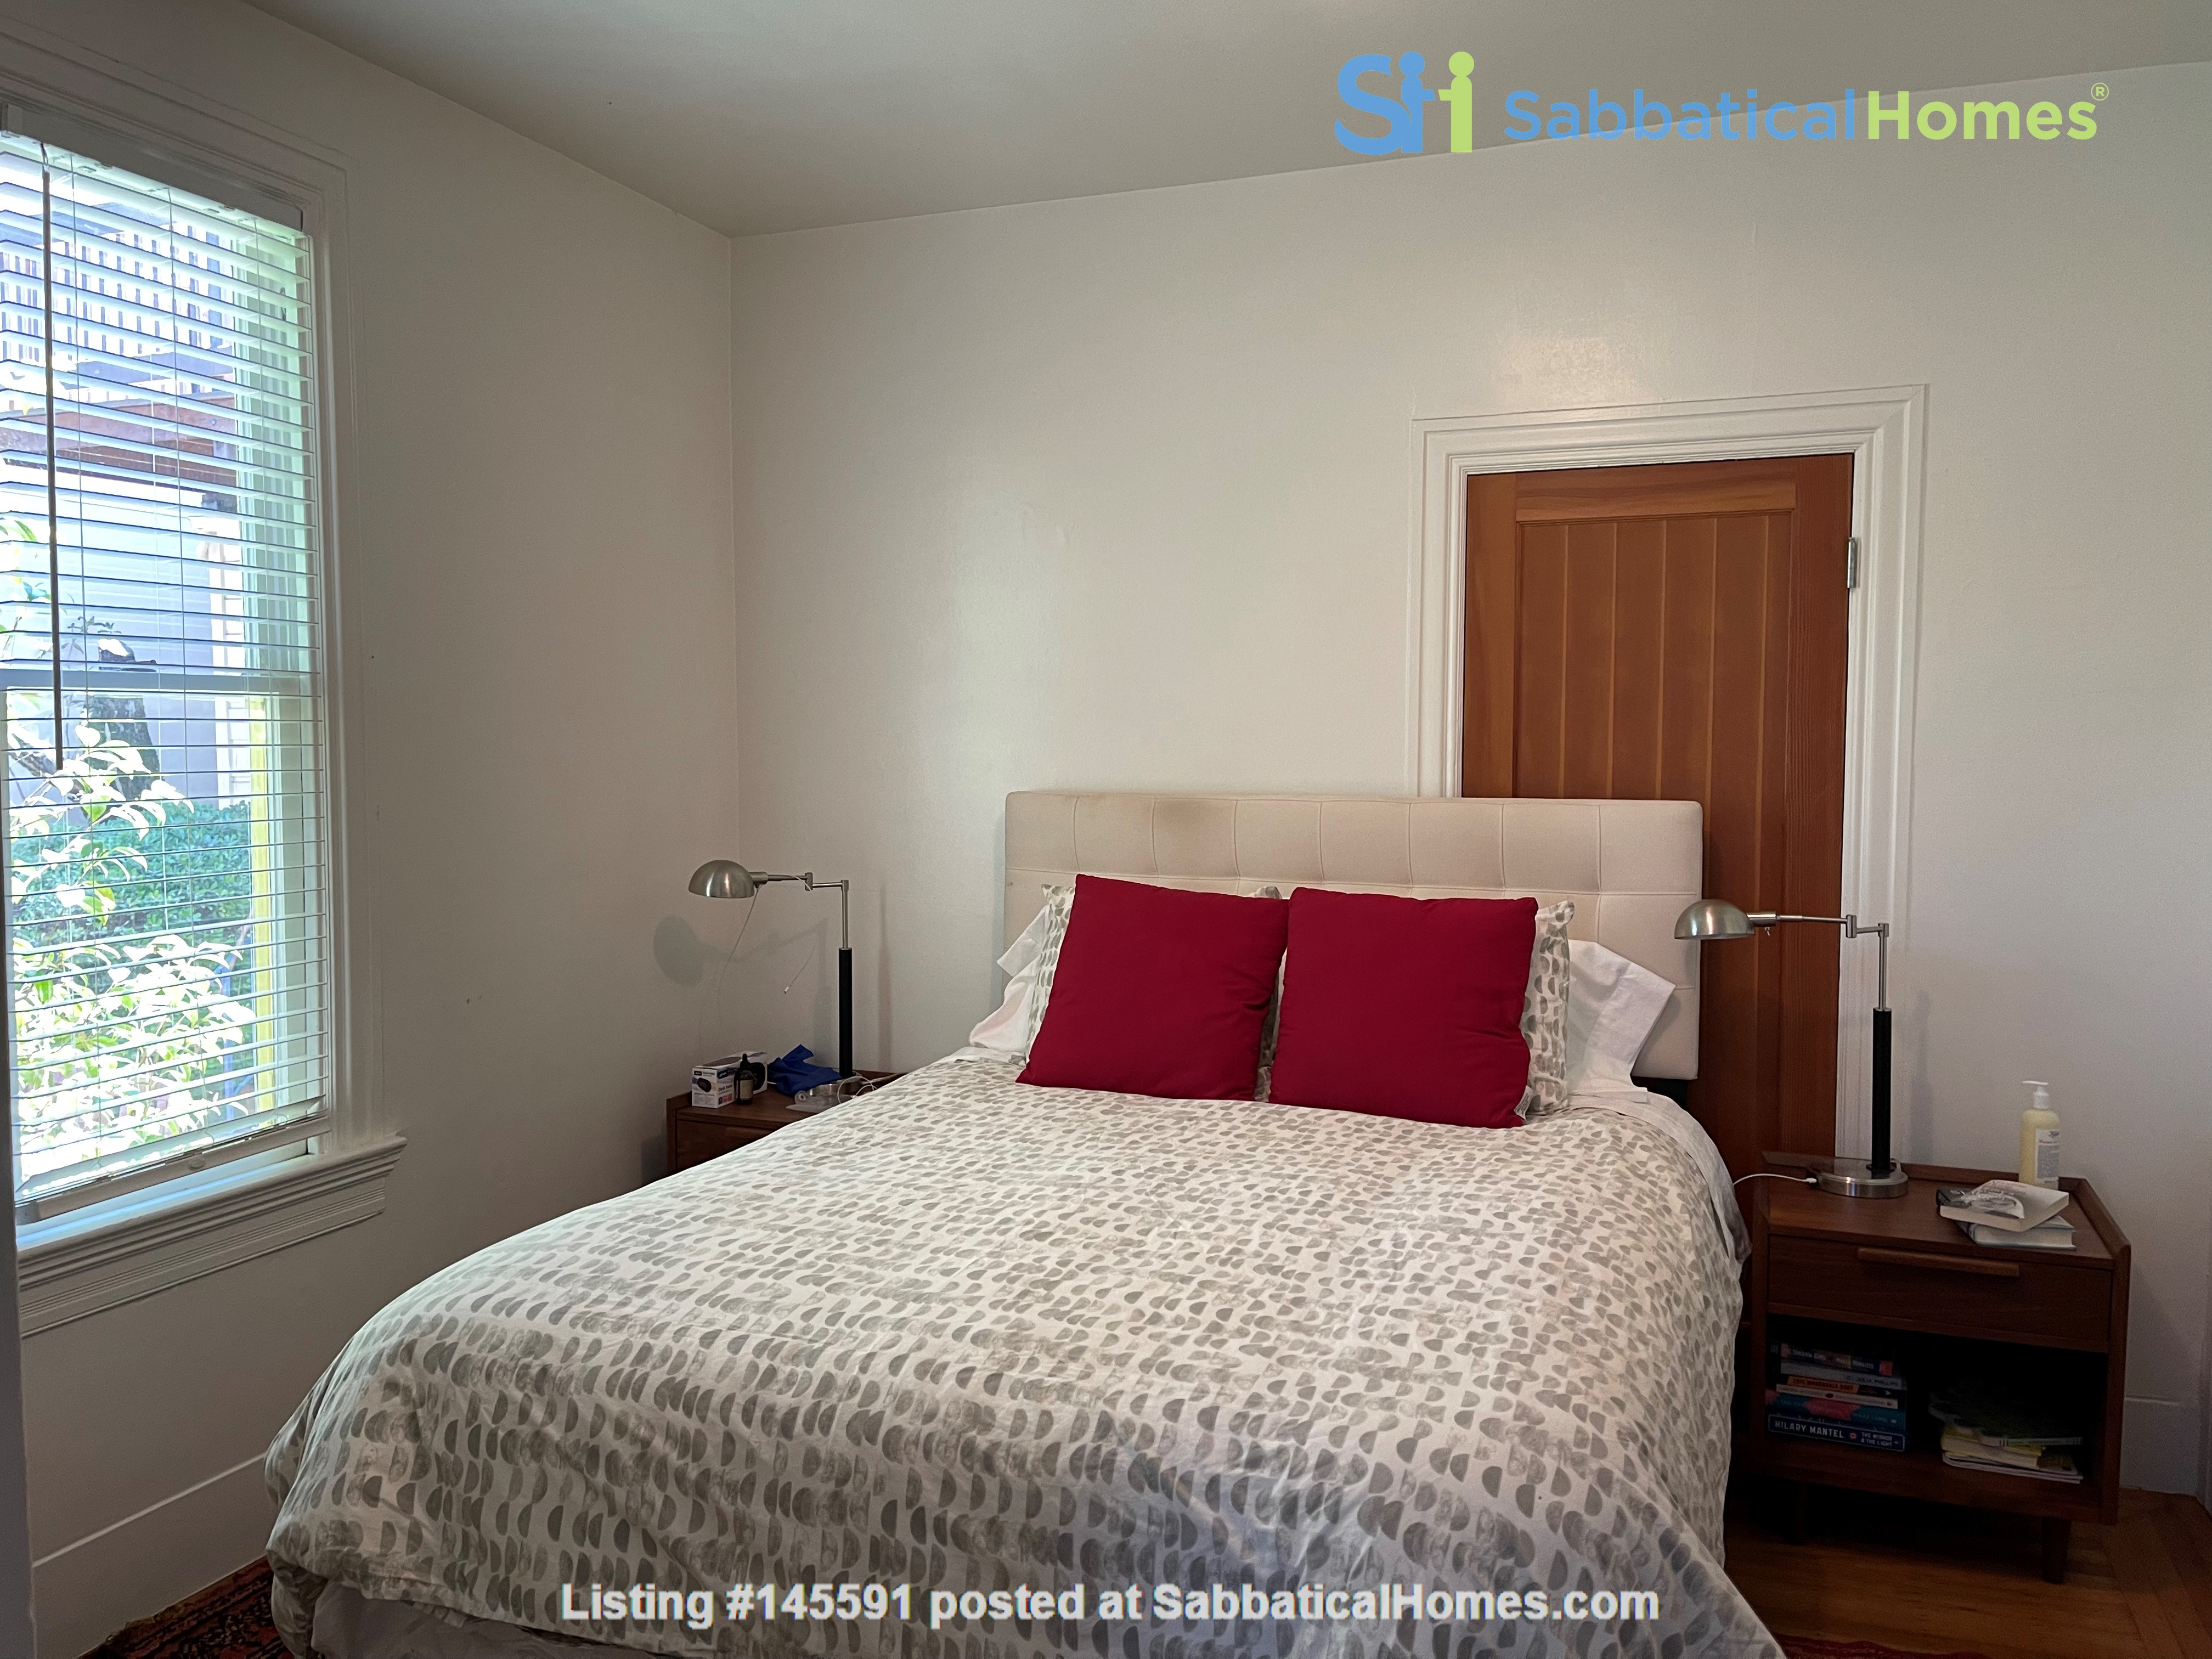 San Francisco cottage charm in a neighborhood with all the amenities Home Rental in San Francisco, California, United States 6